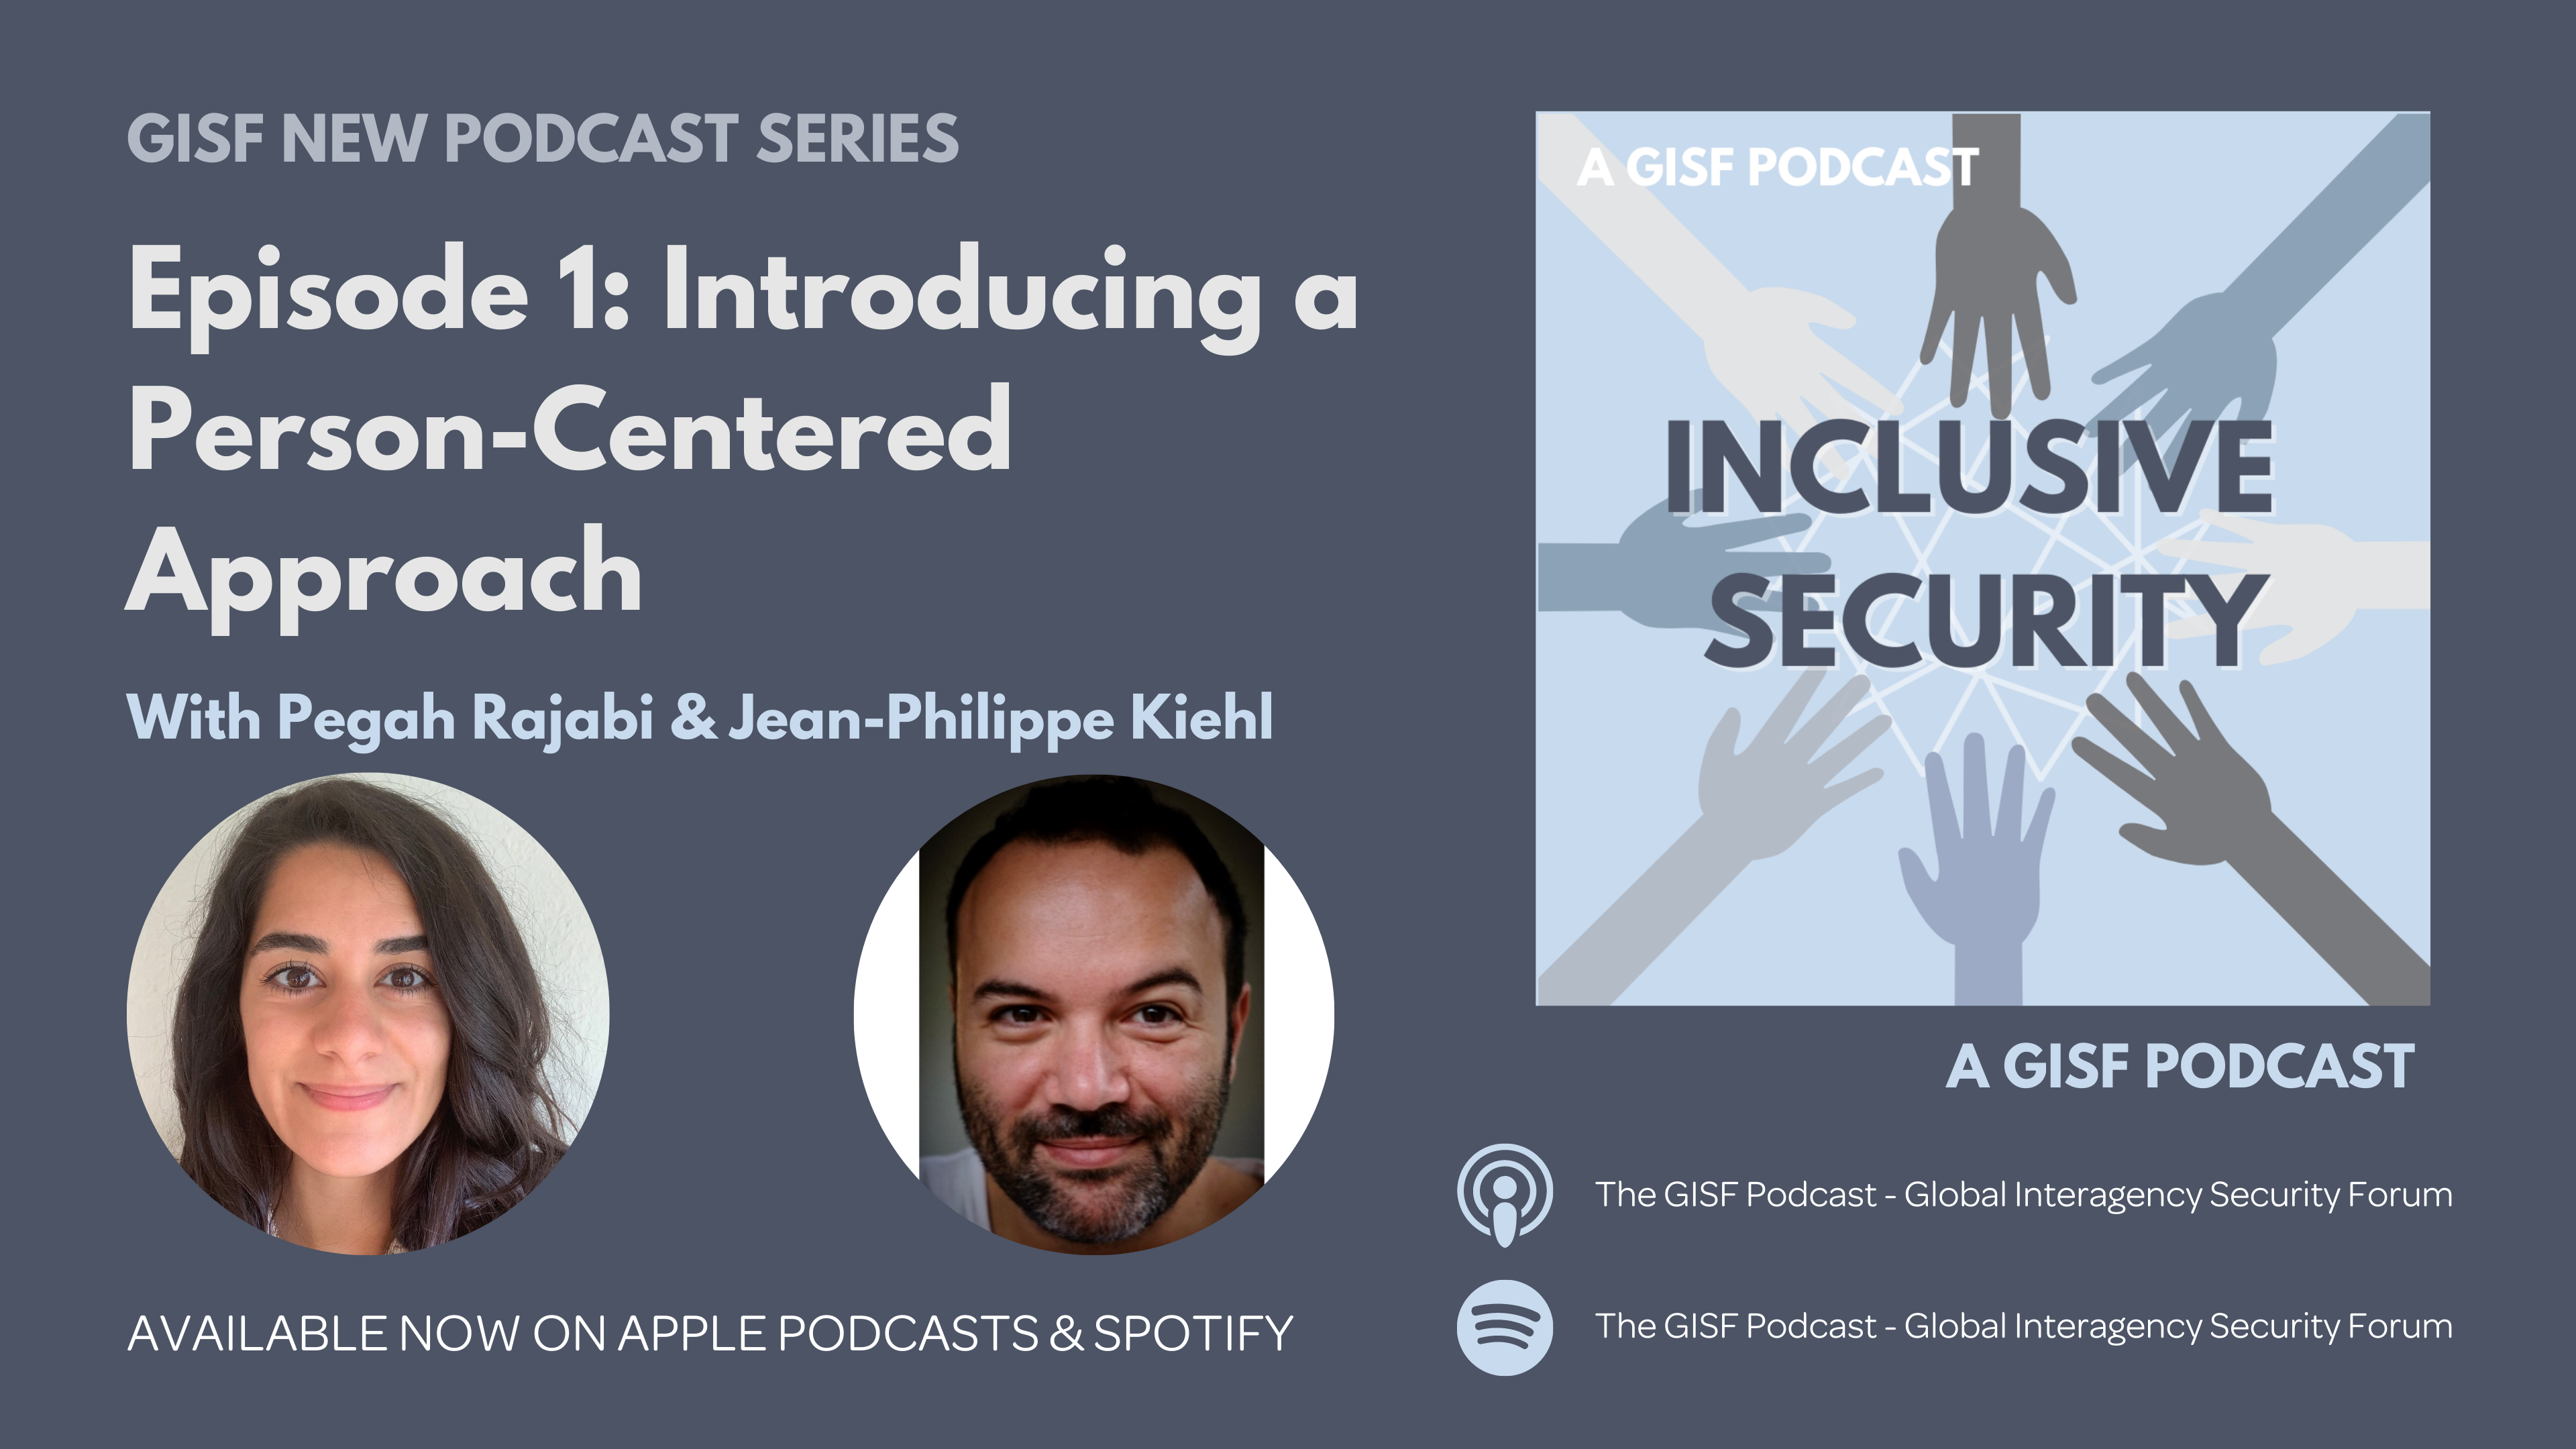 Inclusive Security E1: Introducing a Person-Centered Approach